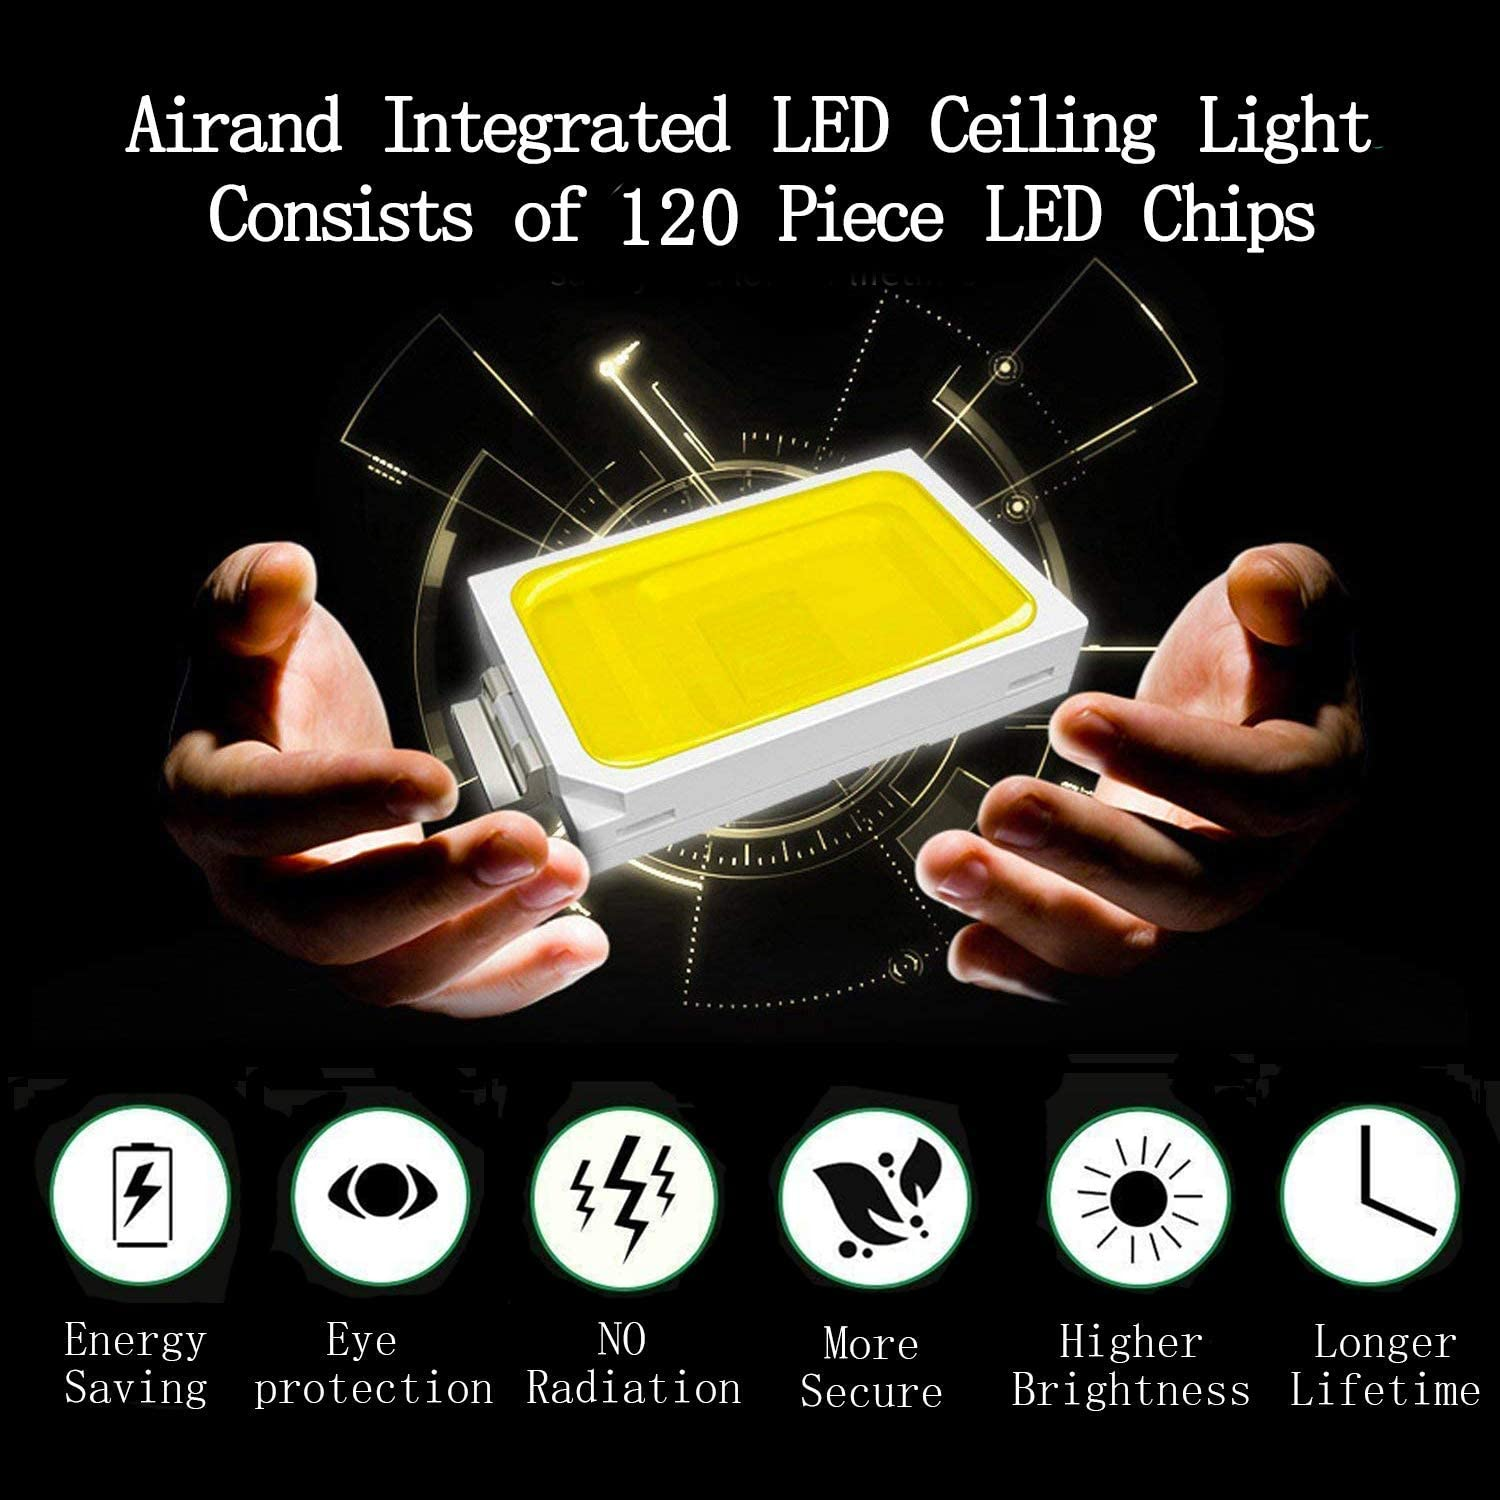 Airand 5000K LED Ceiling Light Flush Mount 18W 1650LM Round LED Ceiling Lamp for Kitchen, Bedroom, Bathroom, Hallway, Stairwell, 9.5'', Waterproof IP44, 80Ra, 150W Equivalent (Daylight White): Home Improvement